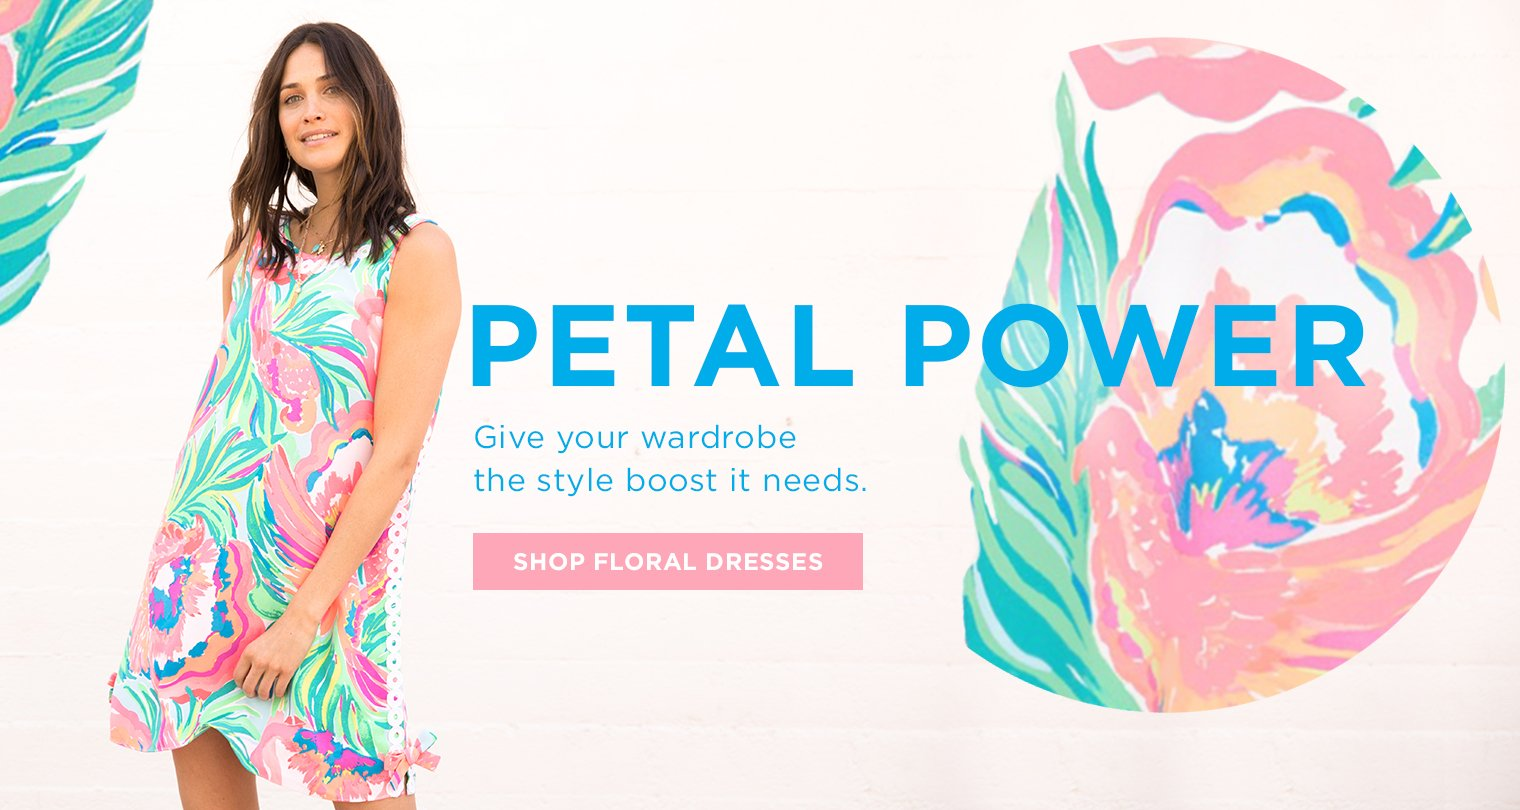 Petal Power. Give your wardrobe the style boost it needs. Shop Floral Dresses.